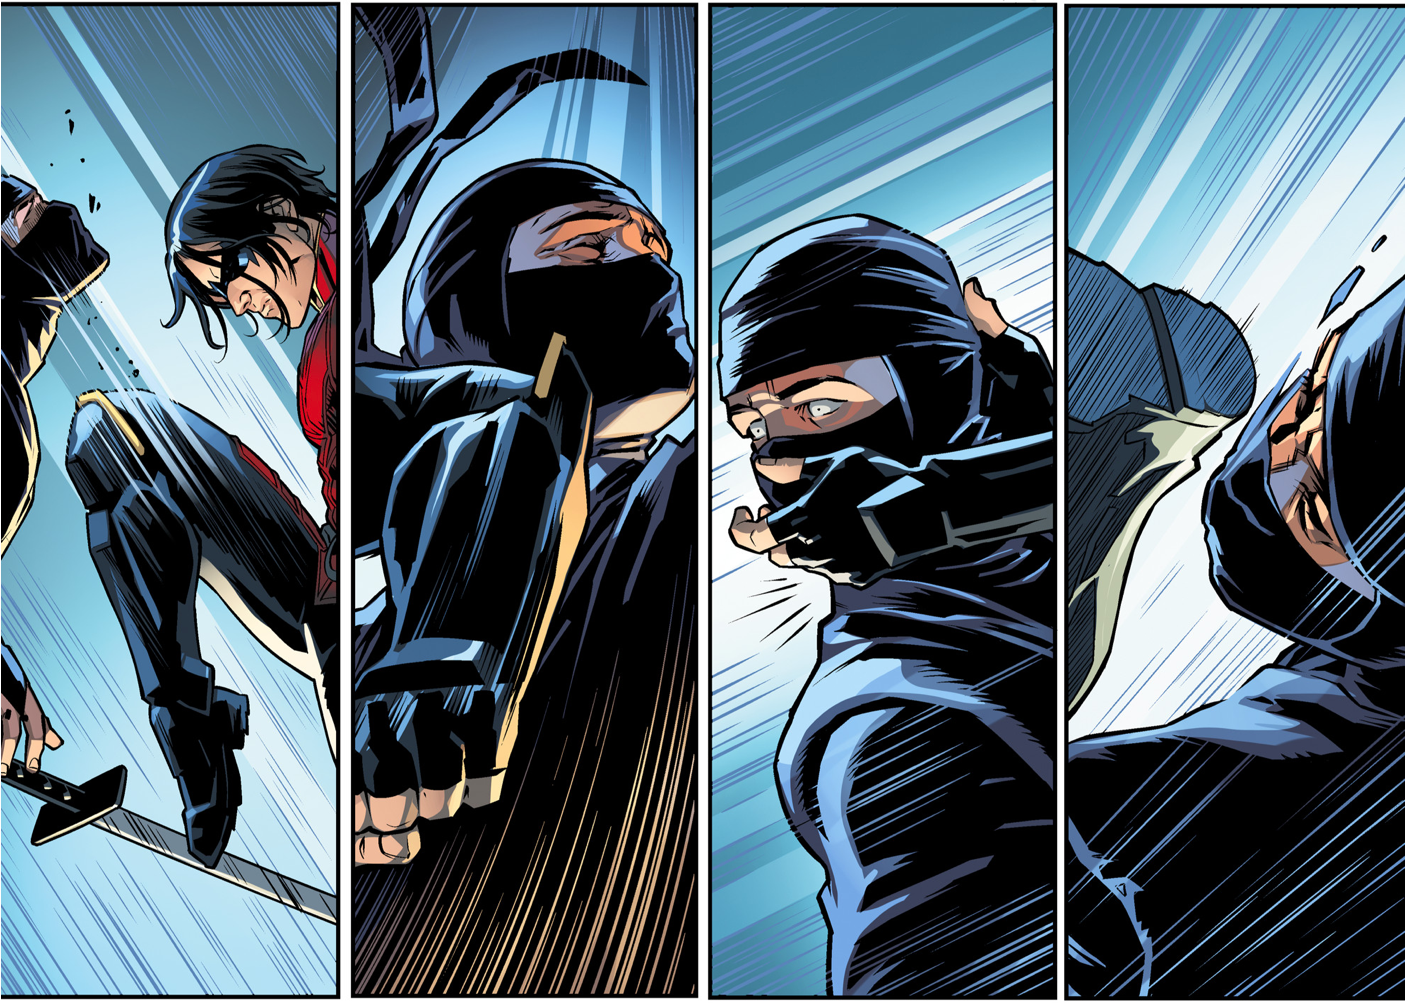 Nightwing (Damian Wayne) VS League of Shadows Ninjas